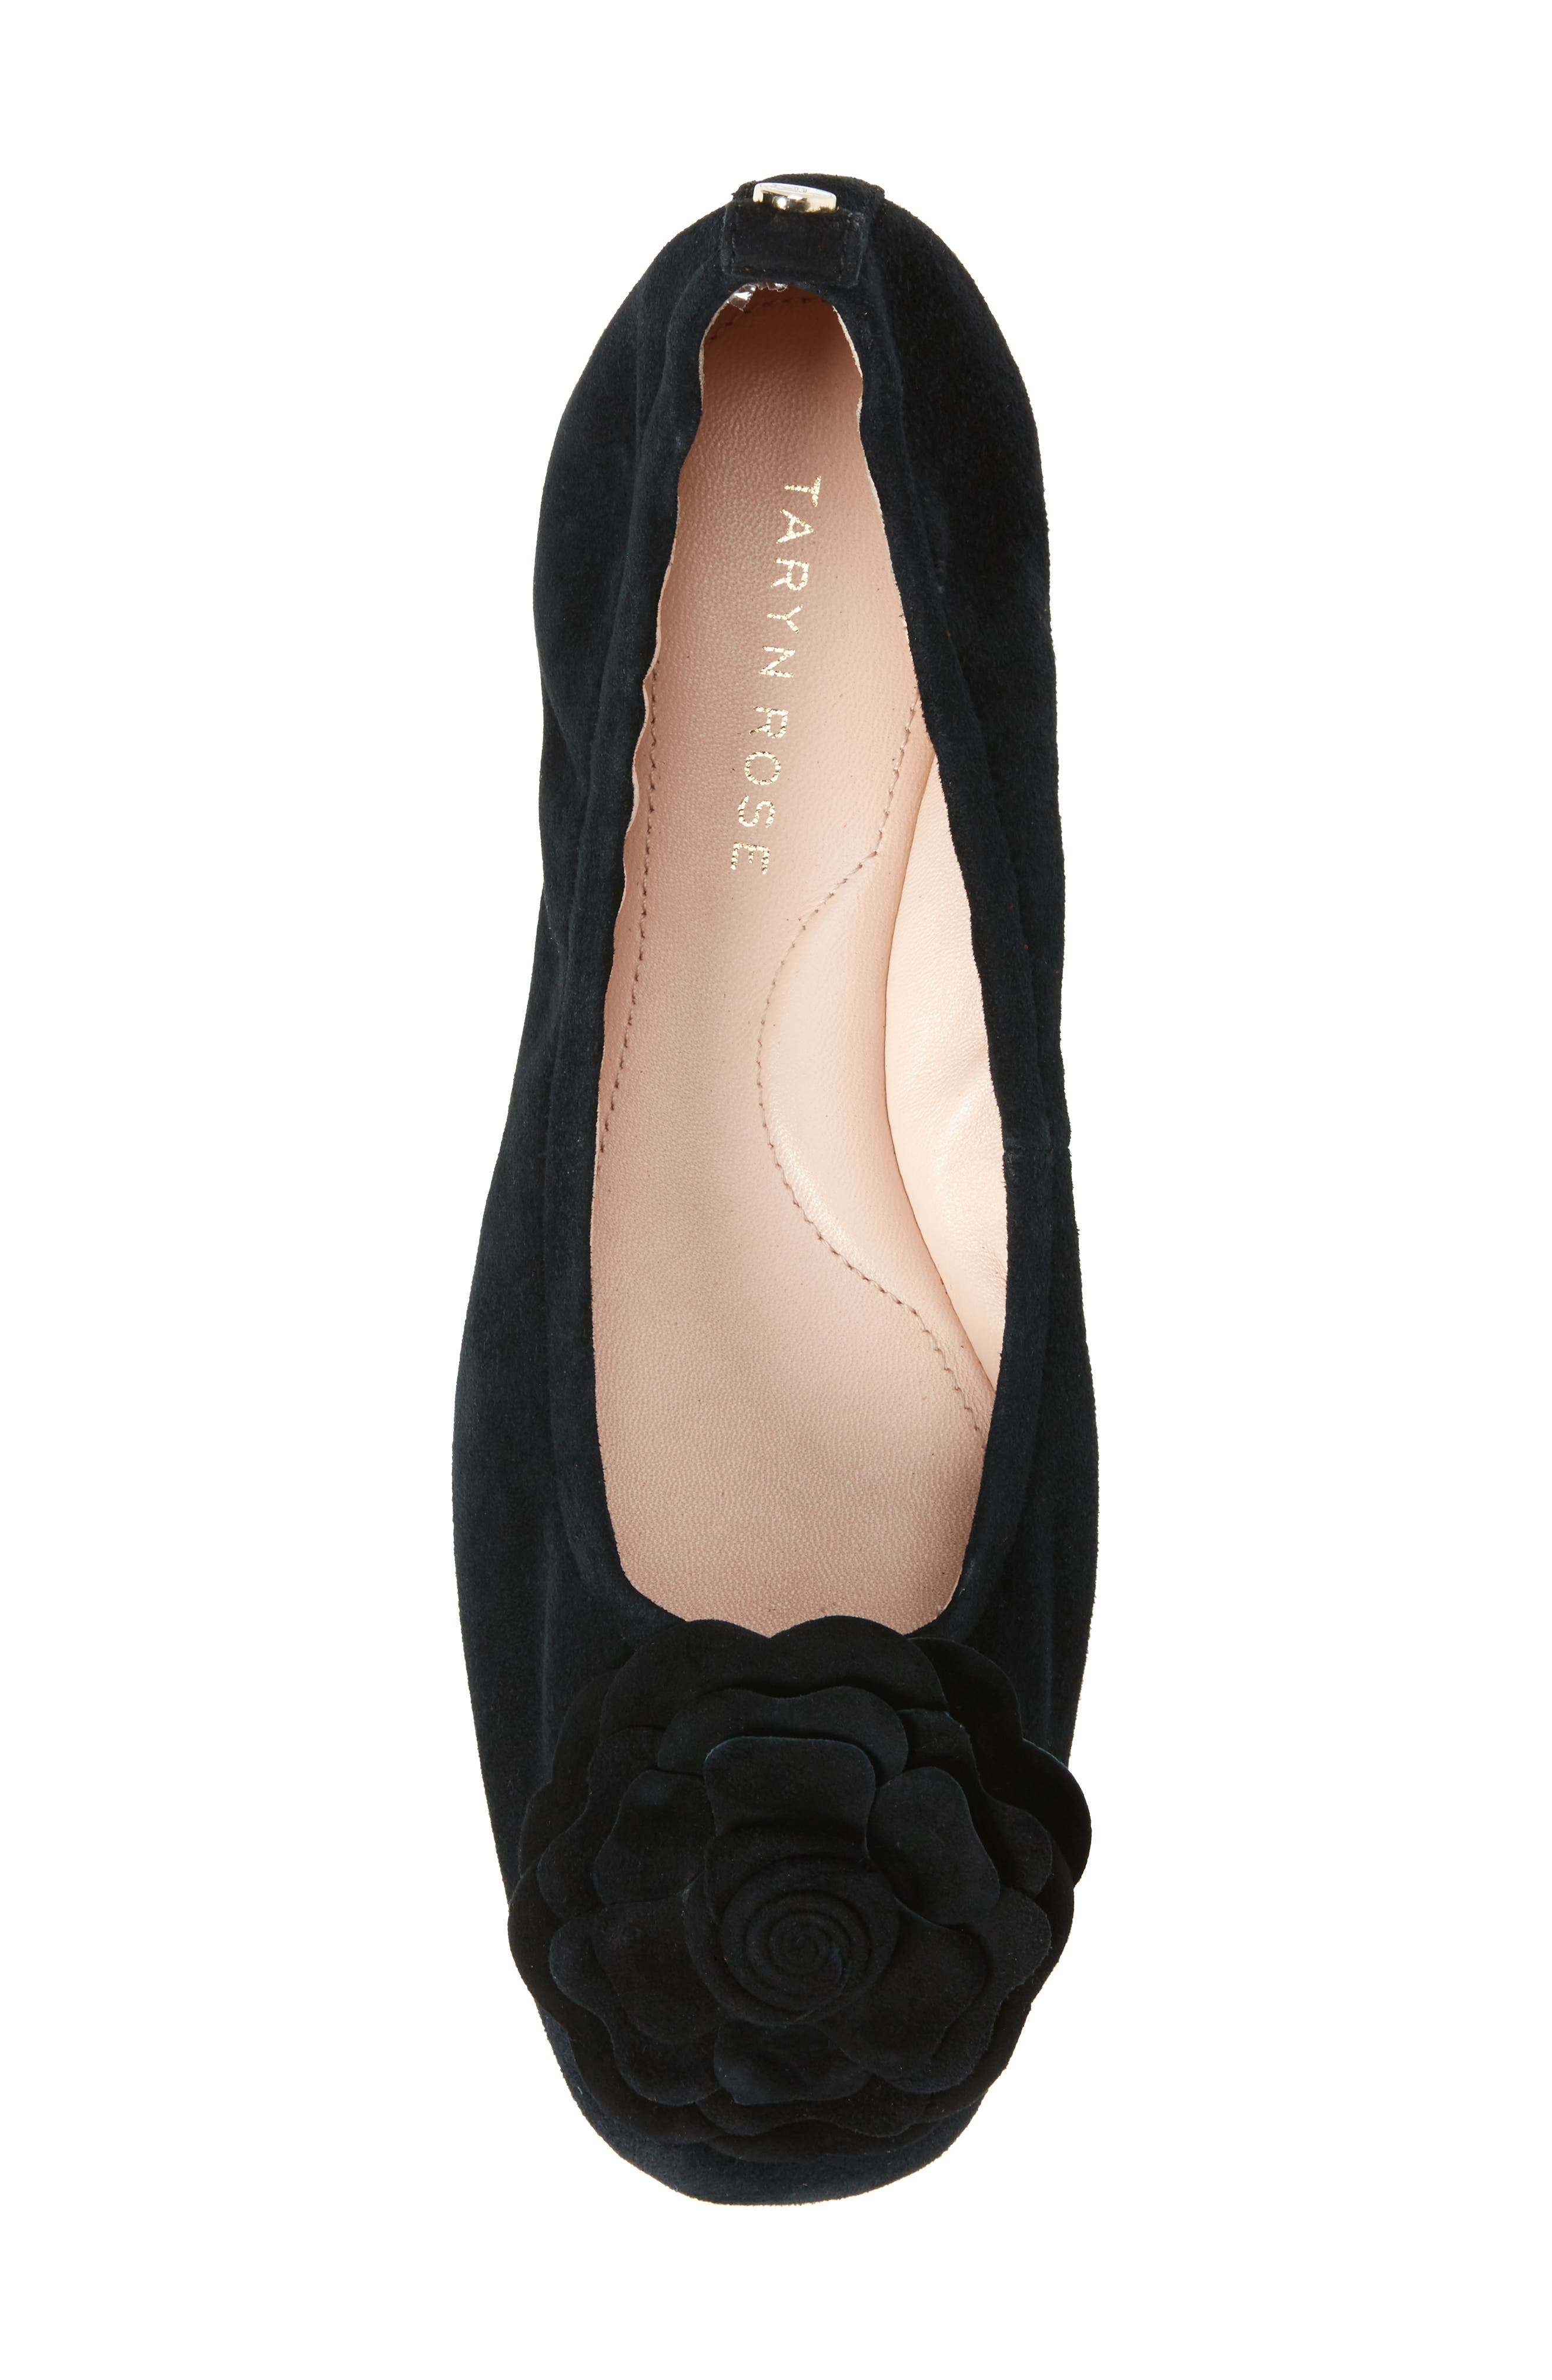 TARYN ROSE, Rosalyn Ballet Flat, Alternate thumbnail 5, color, BLACK SUEDE